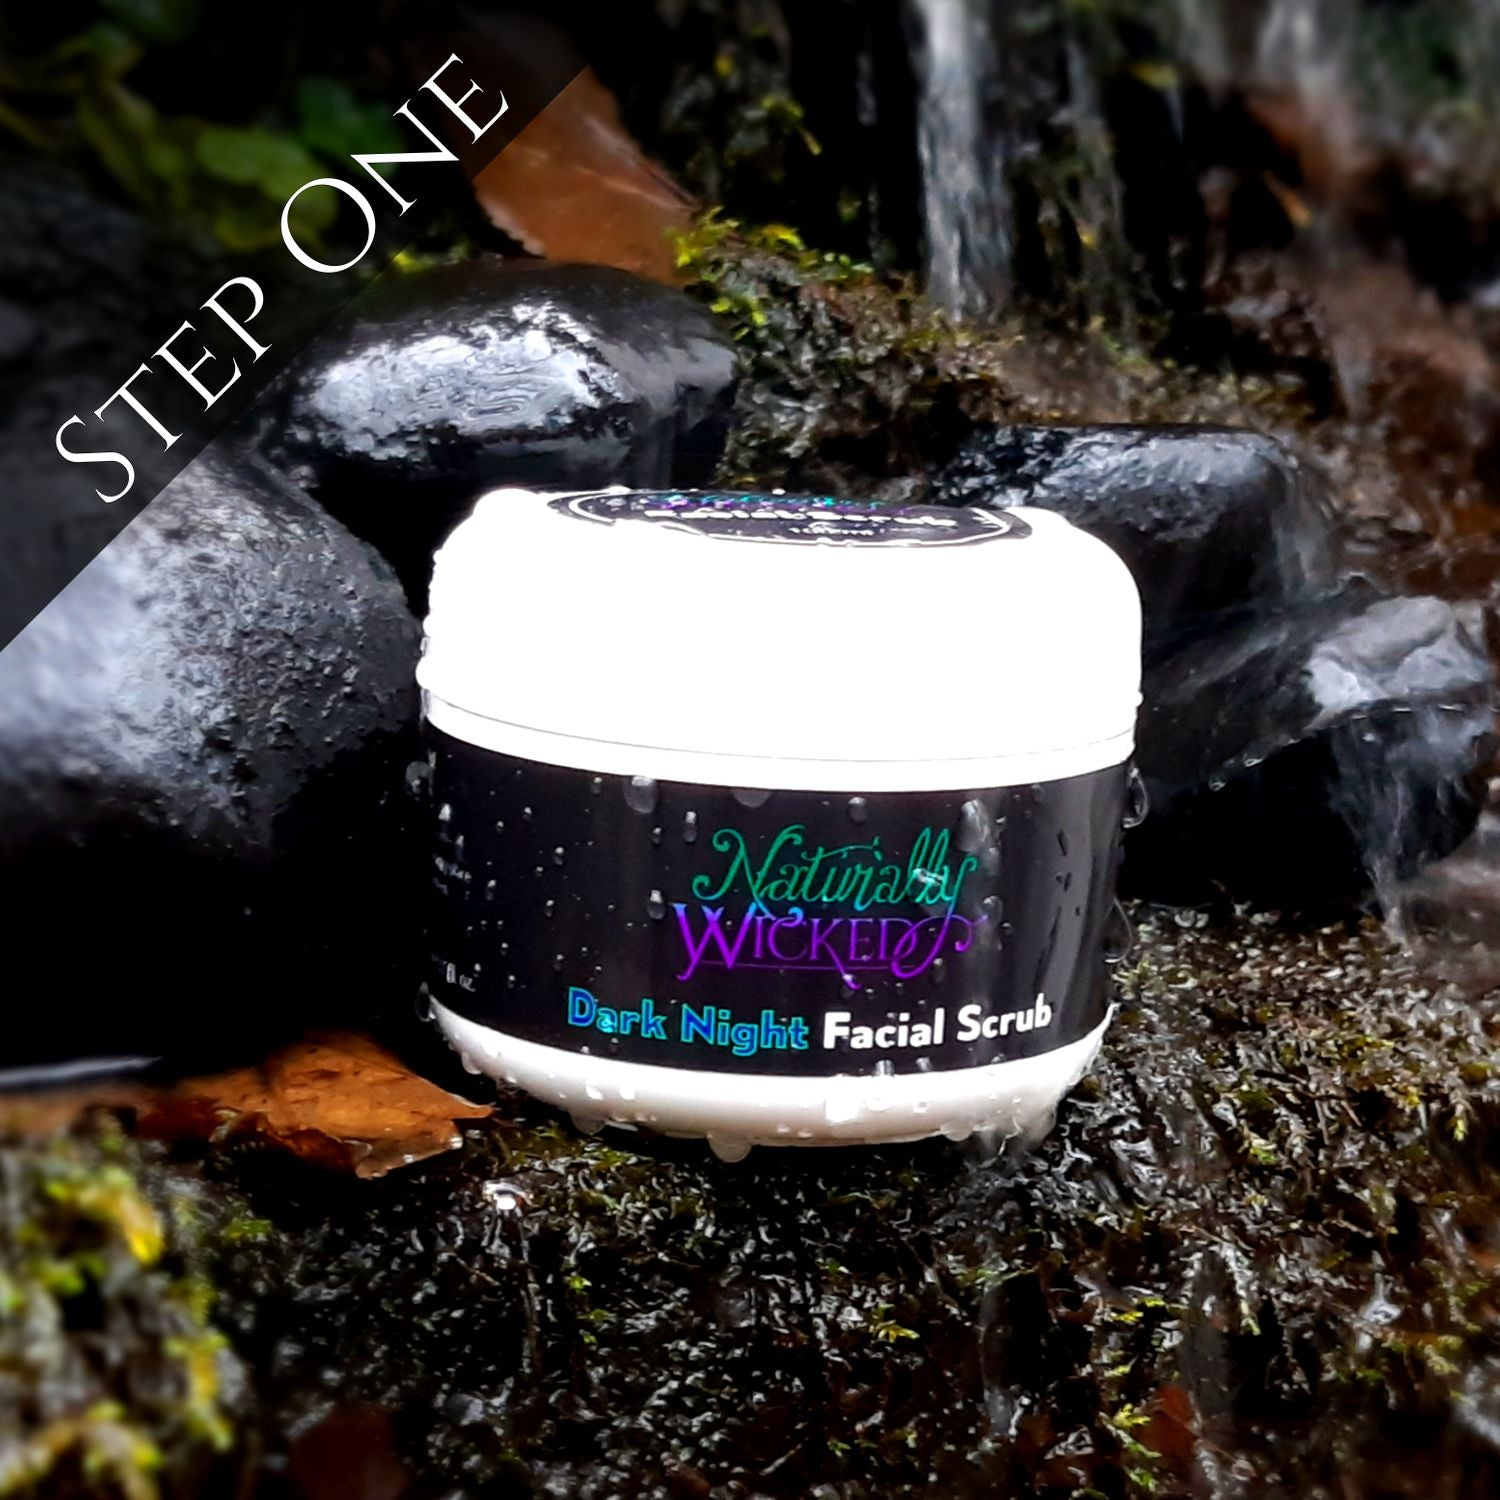 Naturally Wicked Dark Night Liquorice Facial Scrub In Waterfall Surrounded By Black Charcoal - Step 1